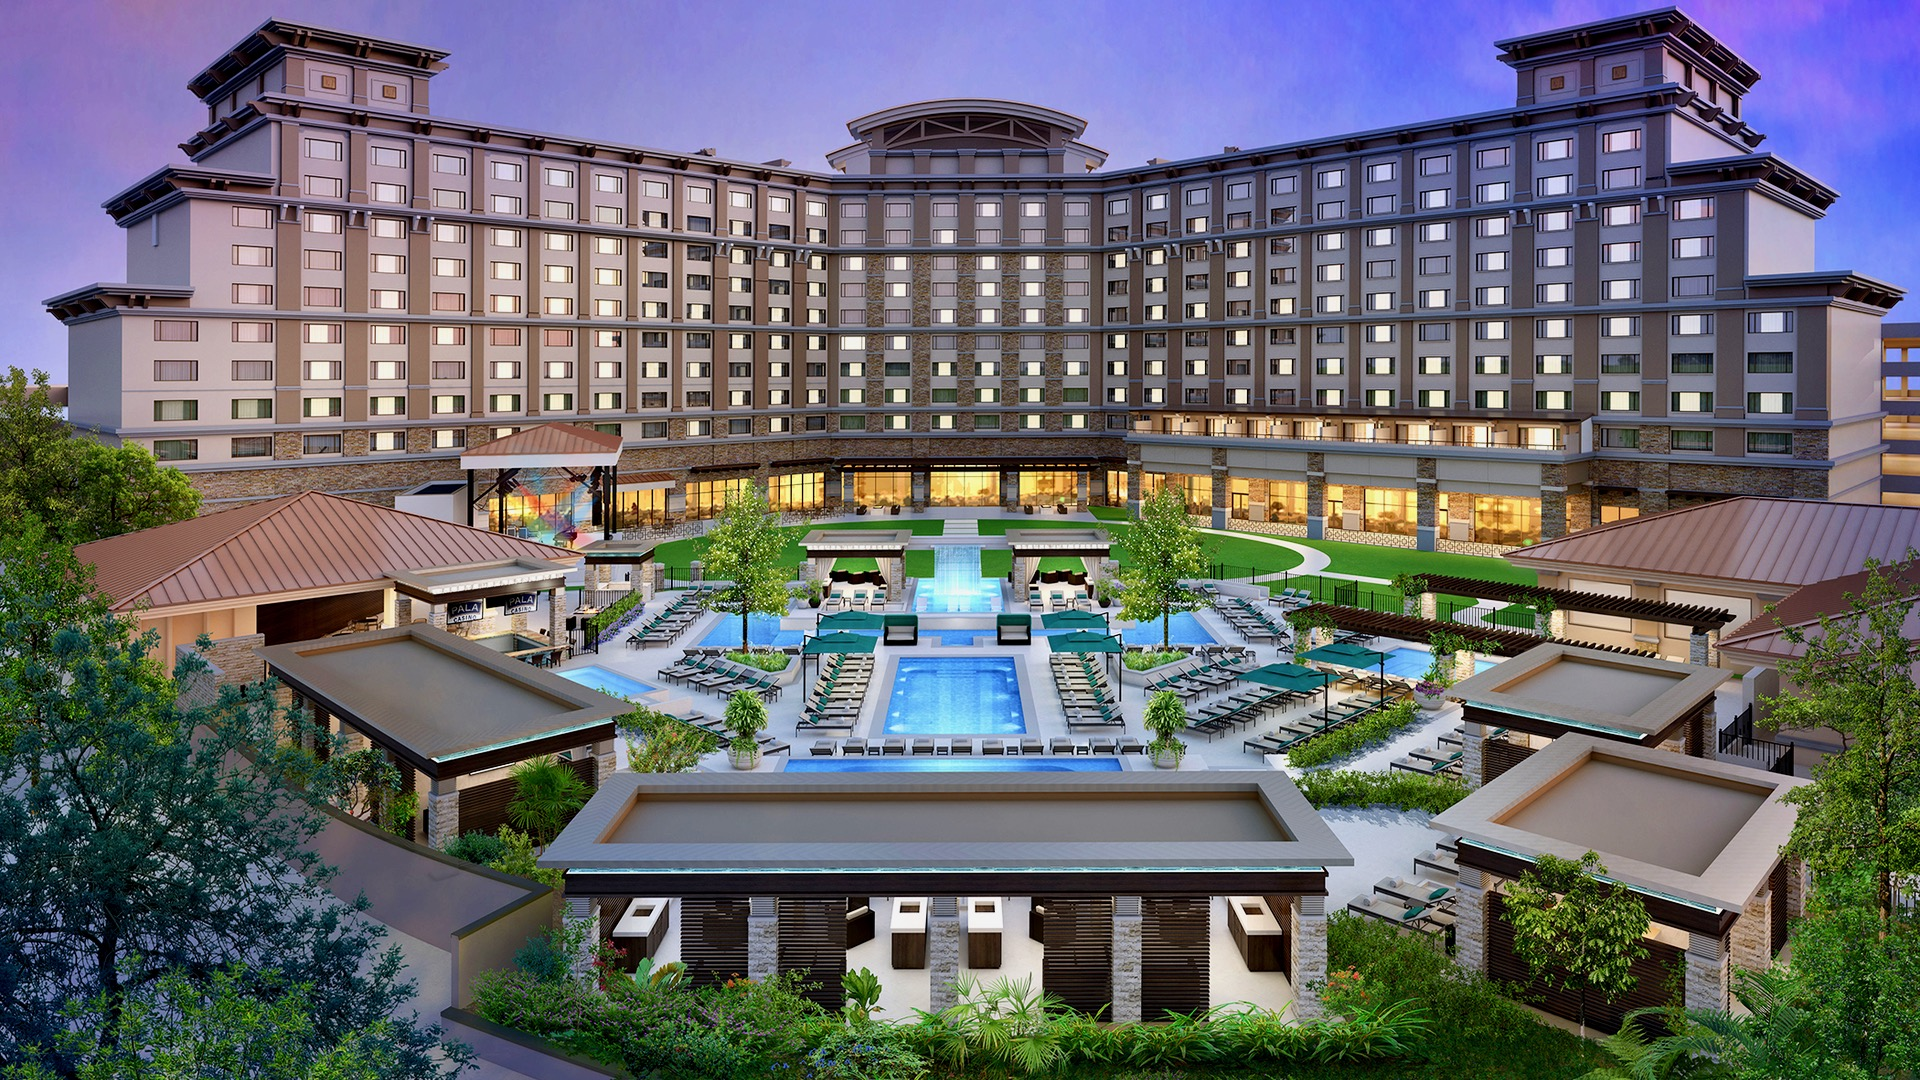 Pala Casino  2018 All You Need to Know Before You Go